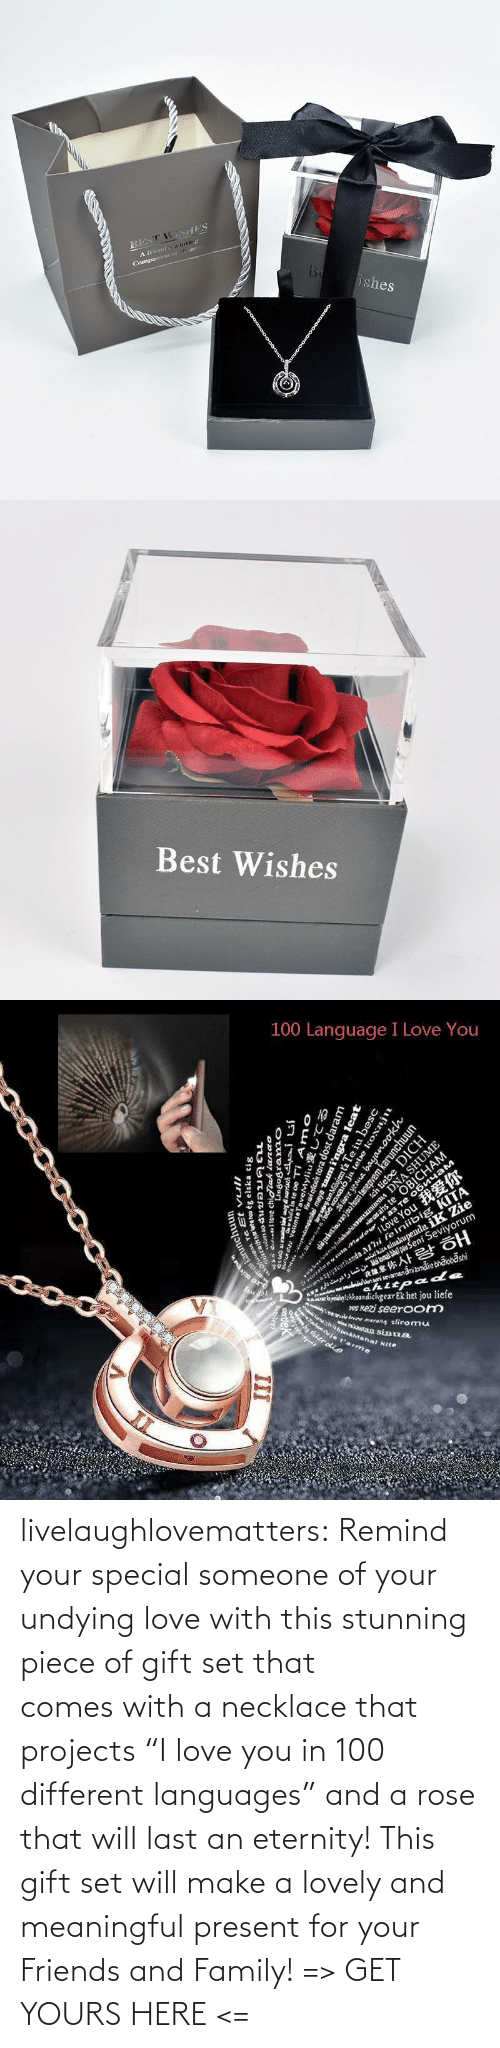 "remind: livelaughlovematters:  Remind your special someone of your undying love with this stunning piece of gift set that comes with a necklace that projects ""I love you in 100 different languages"" and a rose that will last an eternity! This gift set will make a lovely and meaningful present for your Friends and Family! => GET YOURS HERE <="